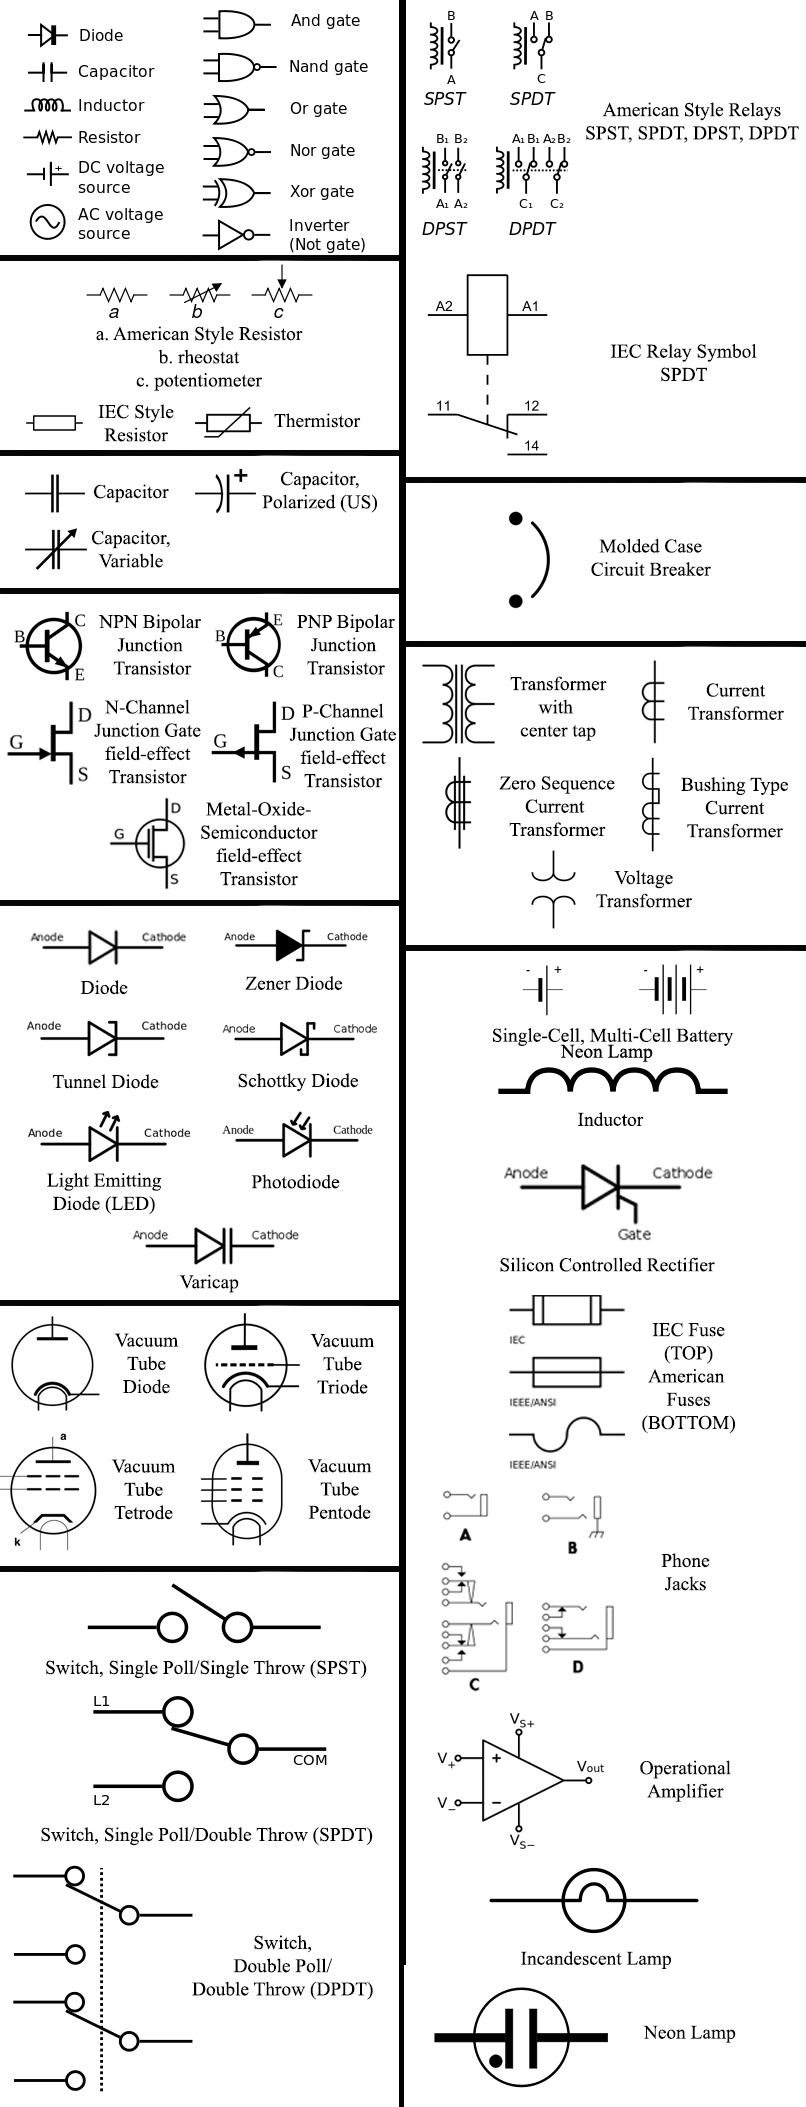 Electrical Symbols And Quantities Teknix Concepts Ac Wiring Electricalsnq Electronic